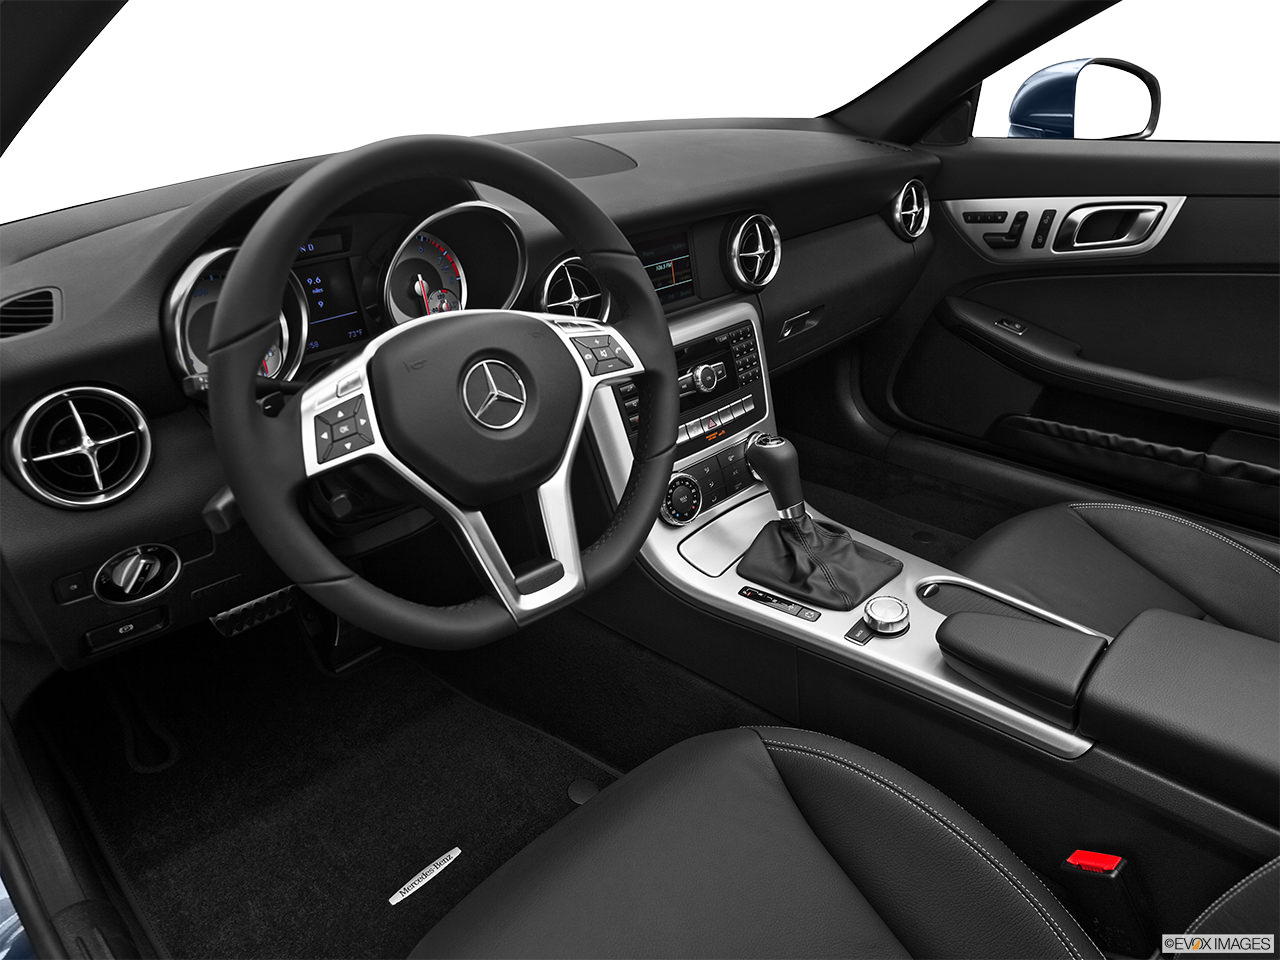 Mercedes-Benz SLK 2012 Interior